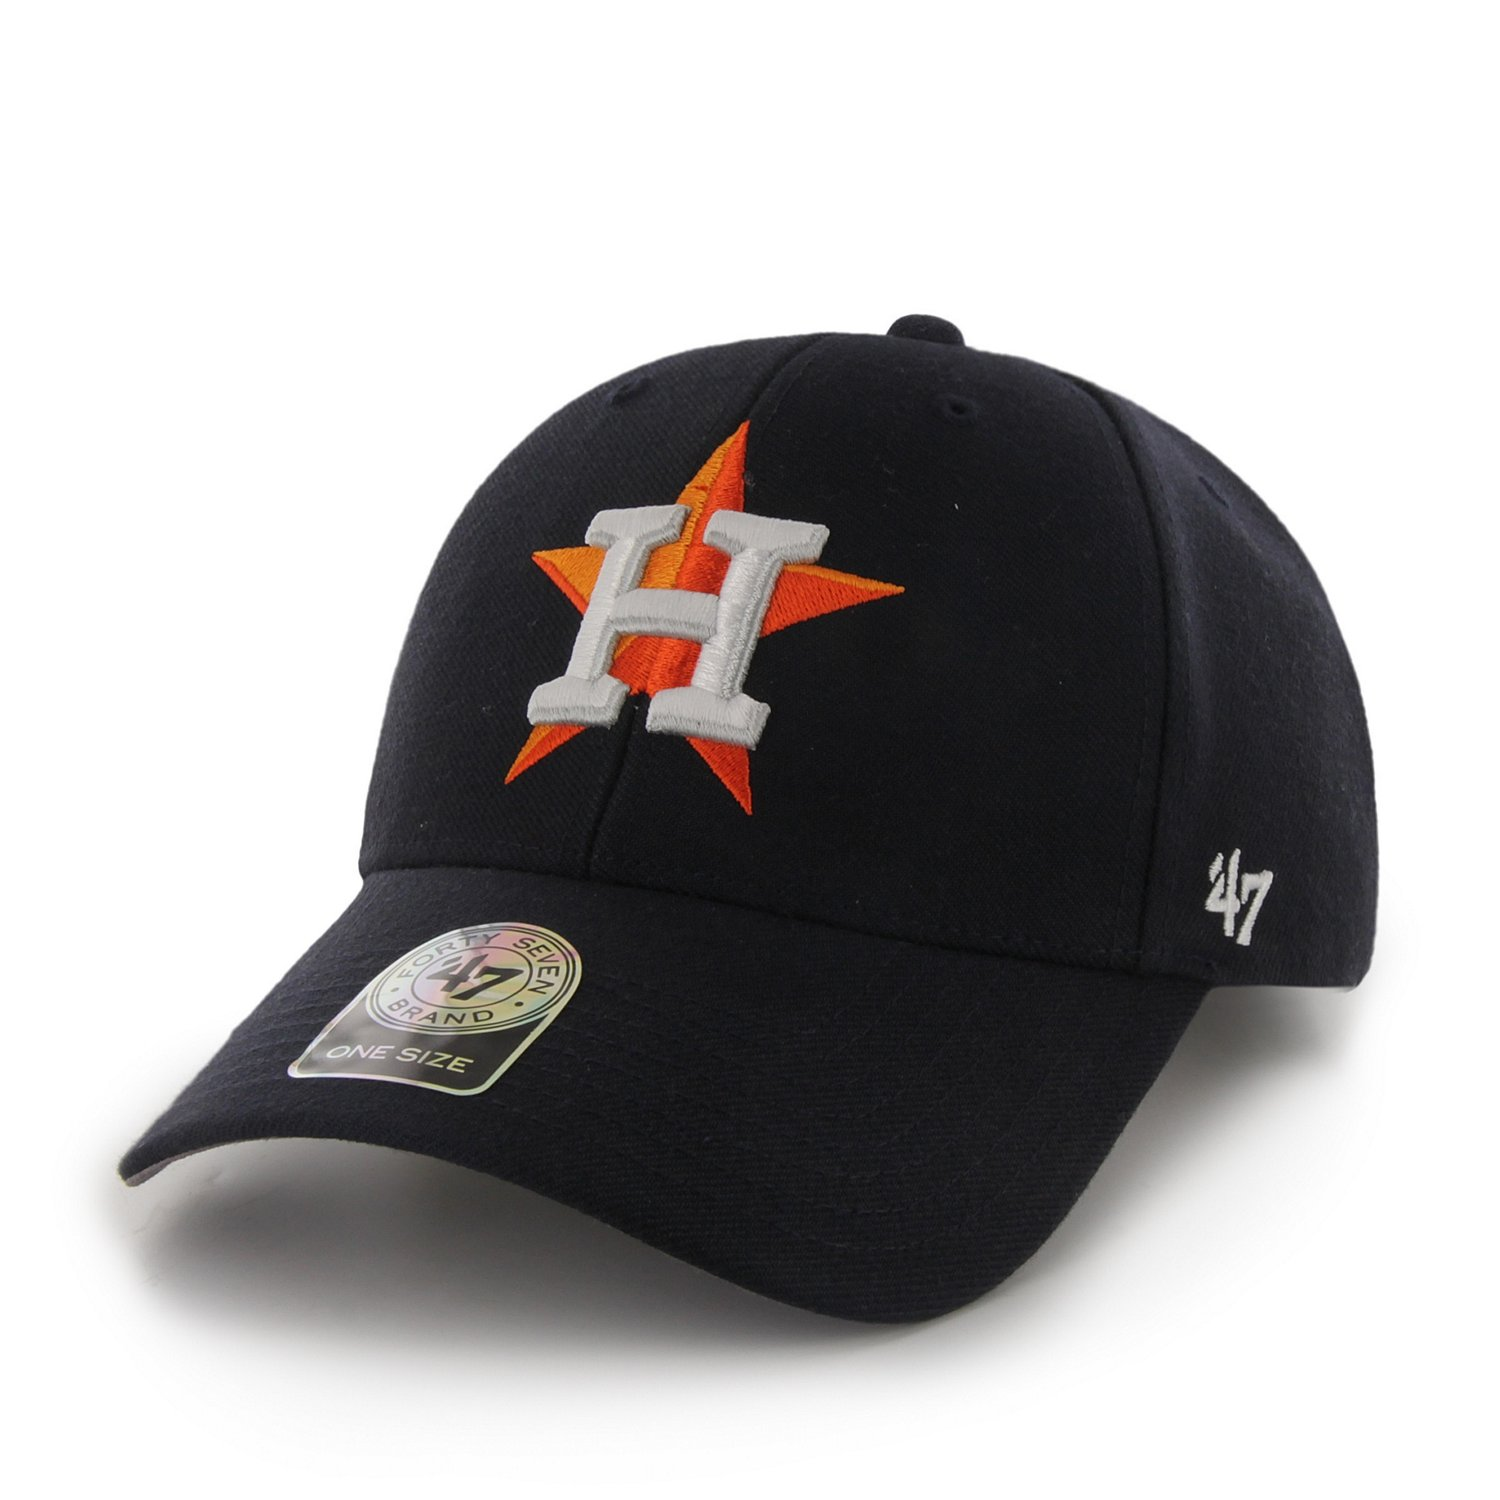 c74f603e Display product reviews for '47 Adults' Houston Astros MVP Cap This ...